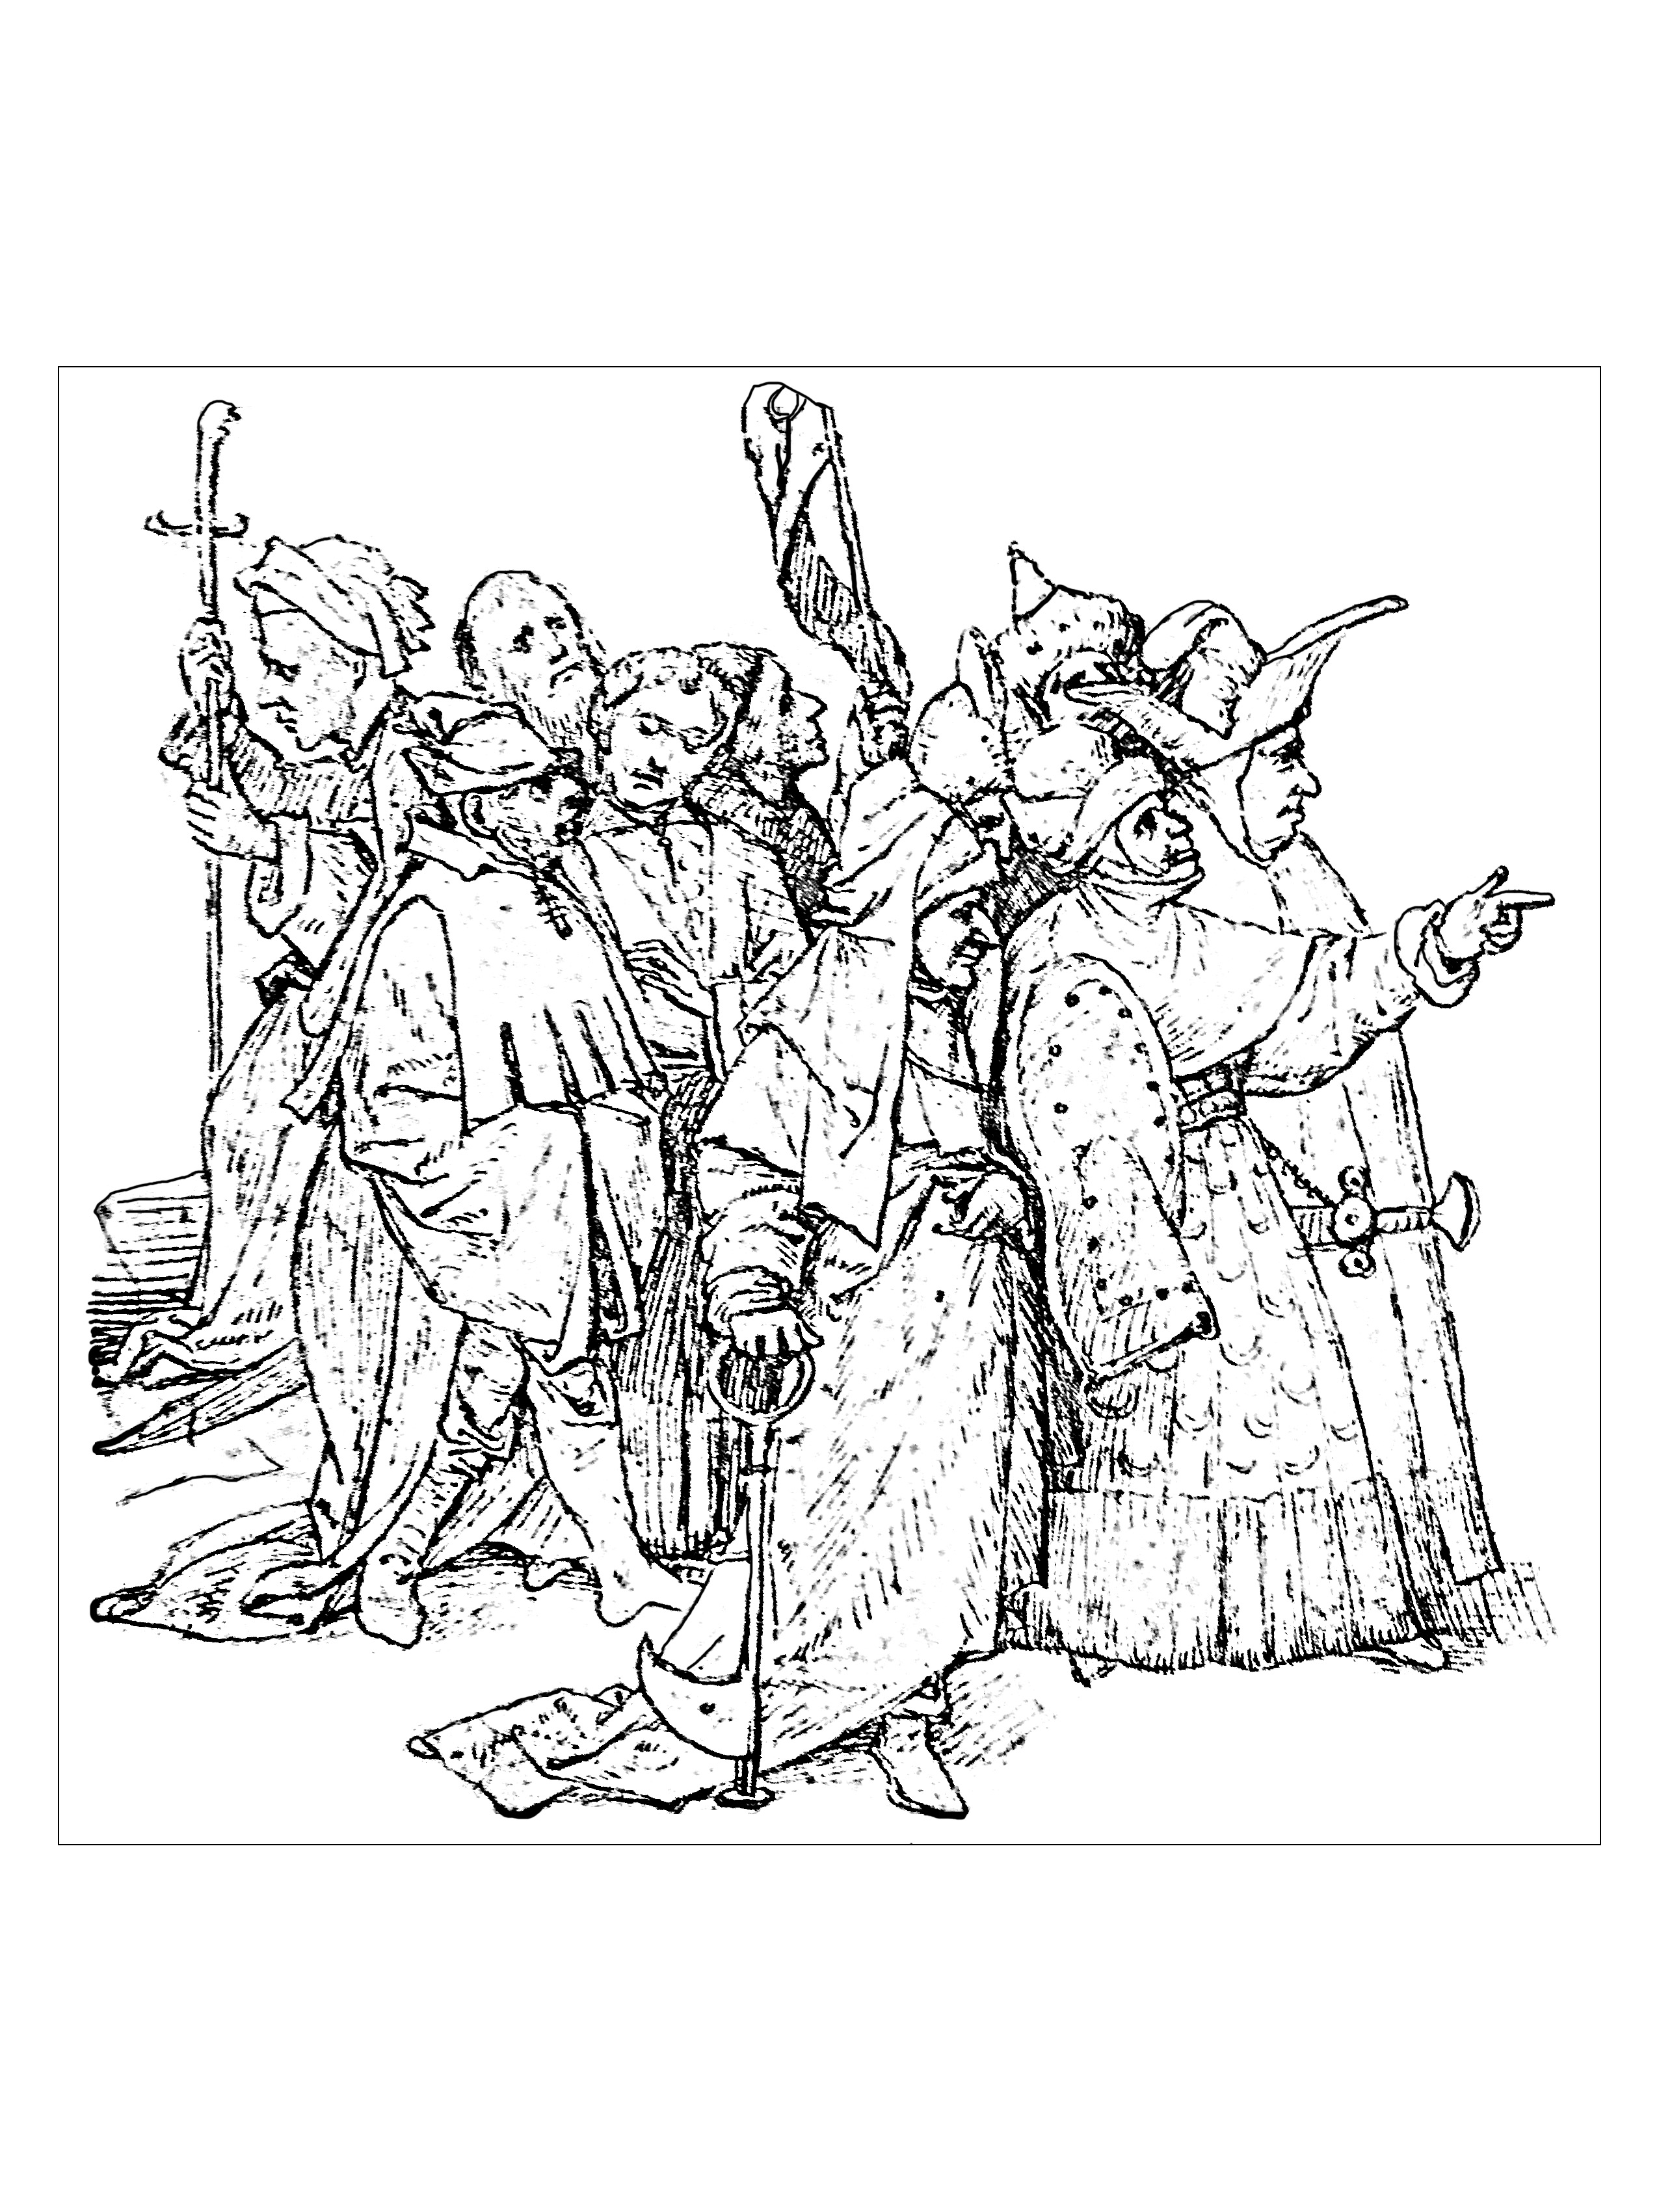 Coloring page created from a 1516 drawing by Jérome Bosch (flemish painter : 1450 - 1516)